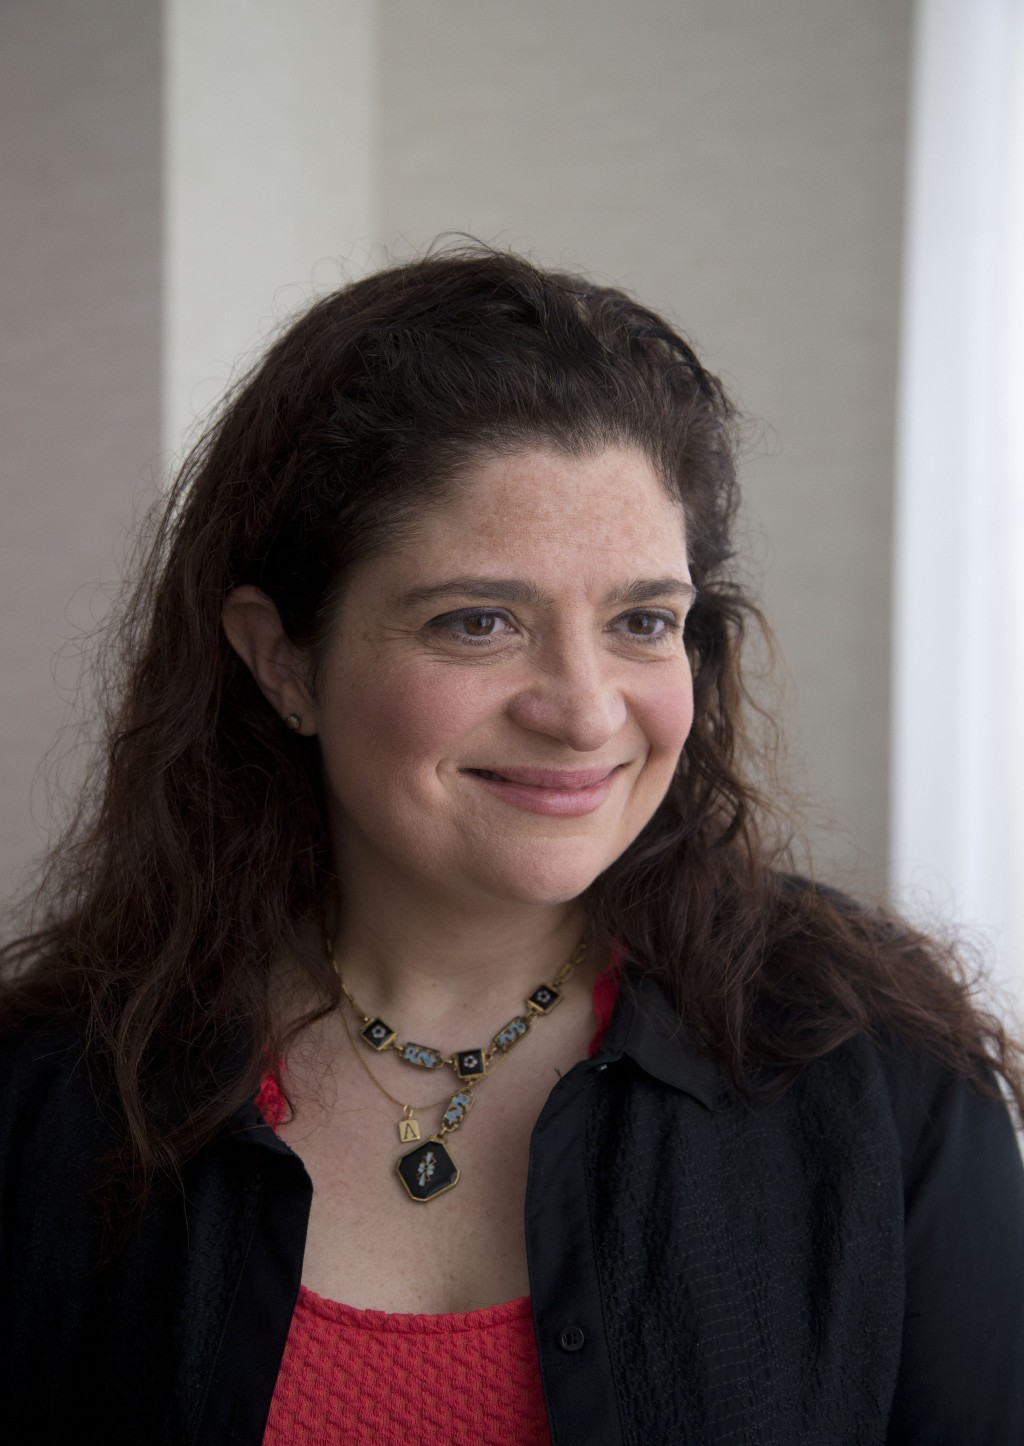 FILE - In this Feb. 21, 2014 file photo, Food Network chef Alex Guarnaschelli is interviewed in Miami Beach, Fla.  Guarnaschelli might be a revered ju